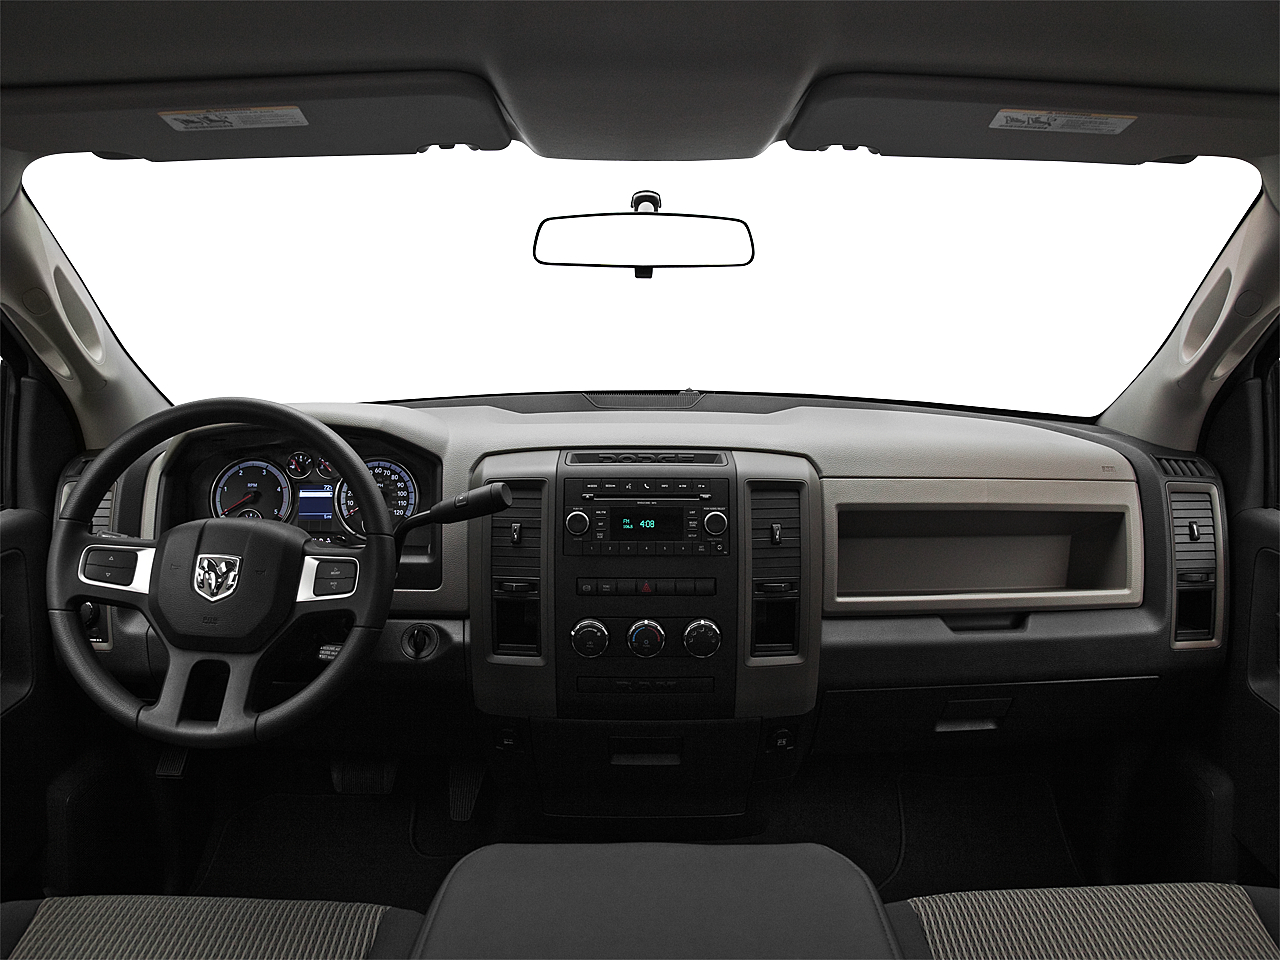 2011 Ram Trucks Ram 3500 DRW ST, centered wide dash shot